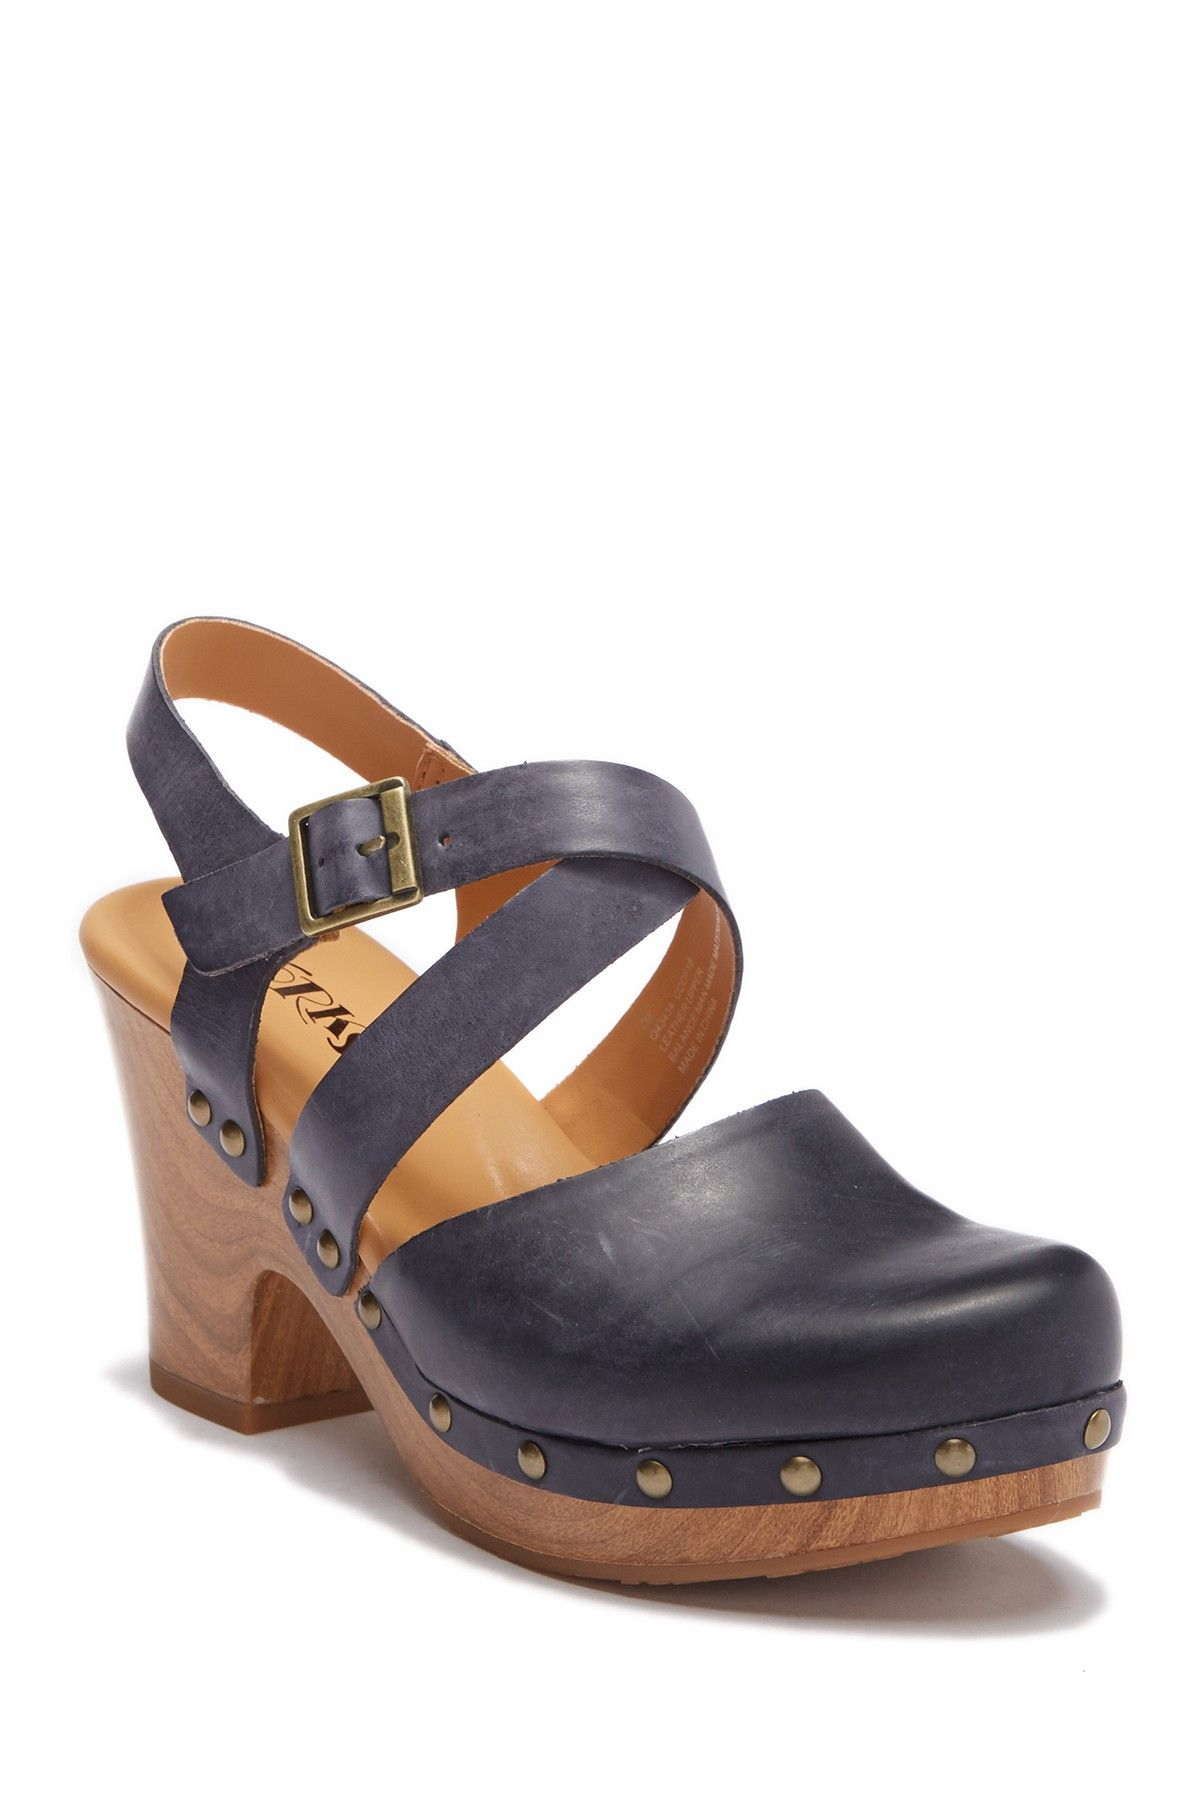 97ef87694752 KORKS BY KORK-EASE - Abloom Slingback Clog Sandal is now 33% off. Free  Shipping on orders over  100.